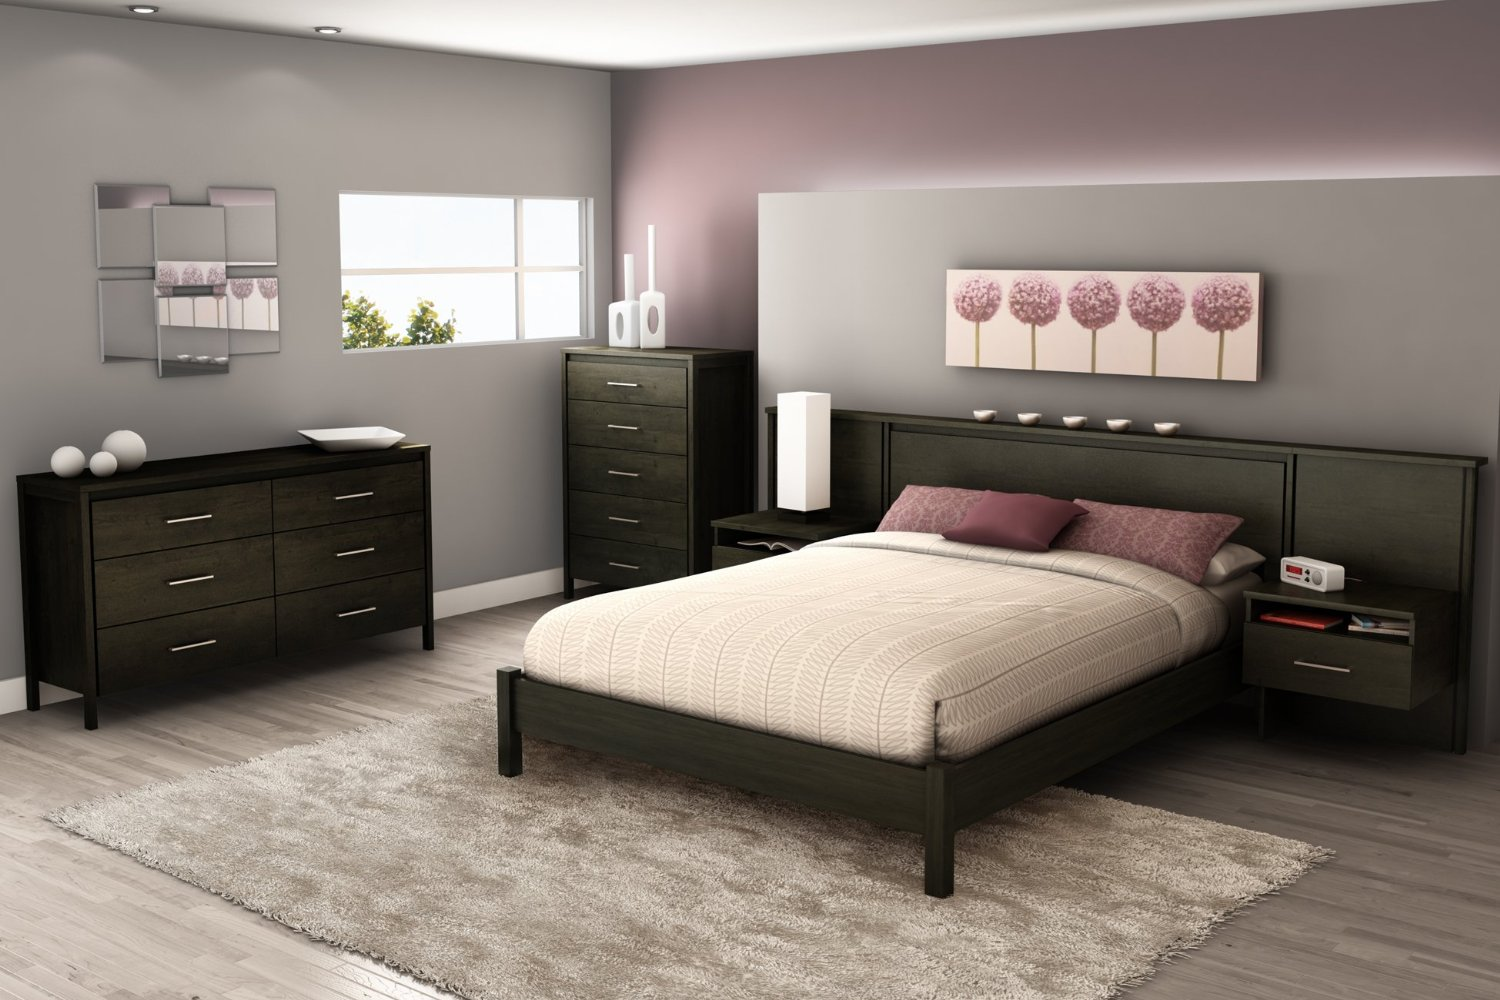 Bedroom Bed Furniture Images